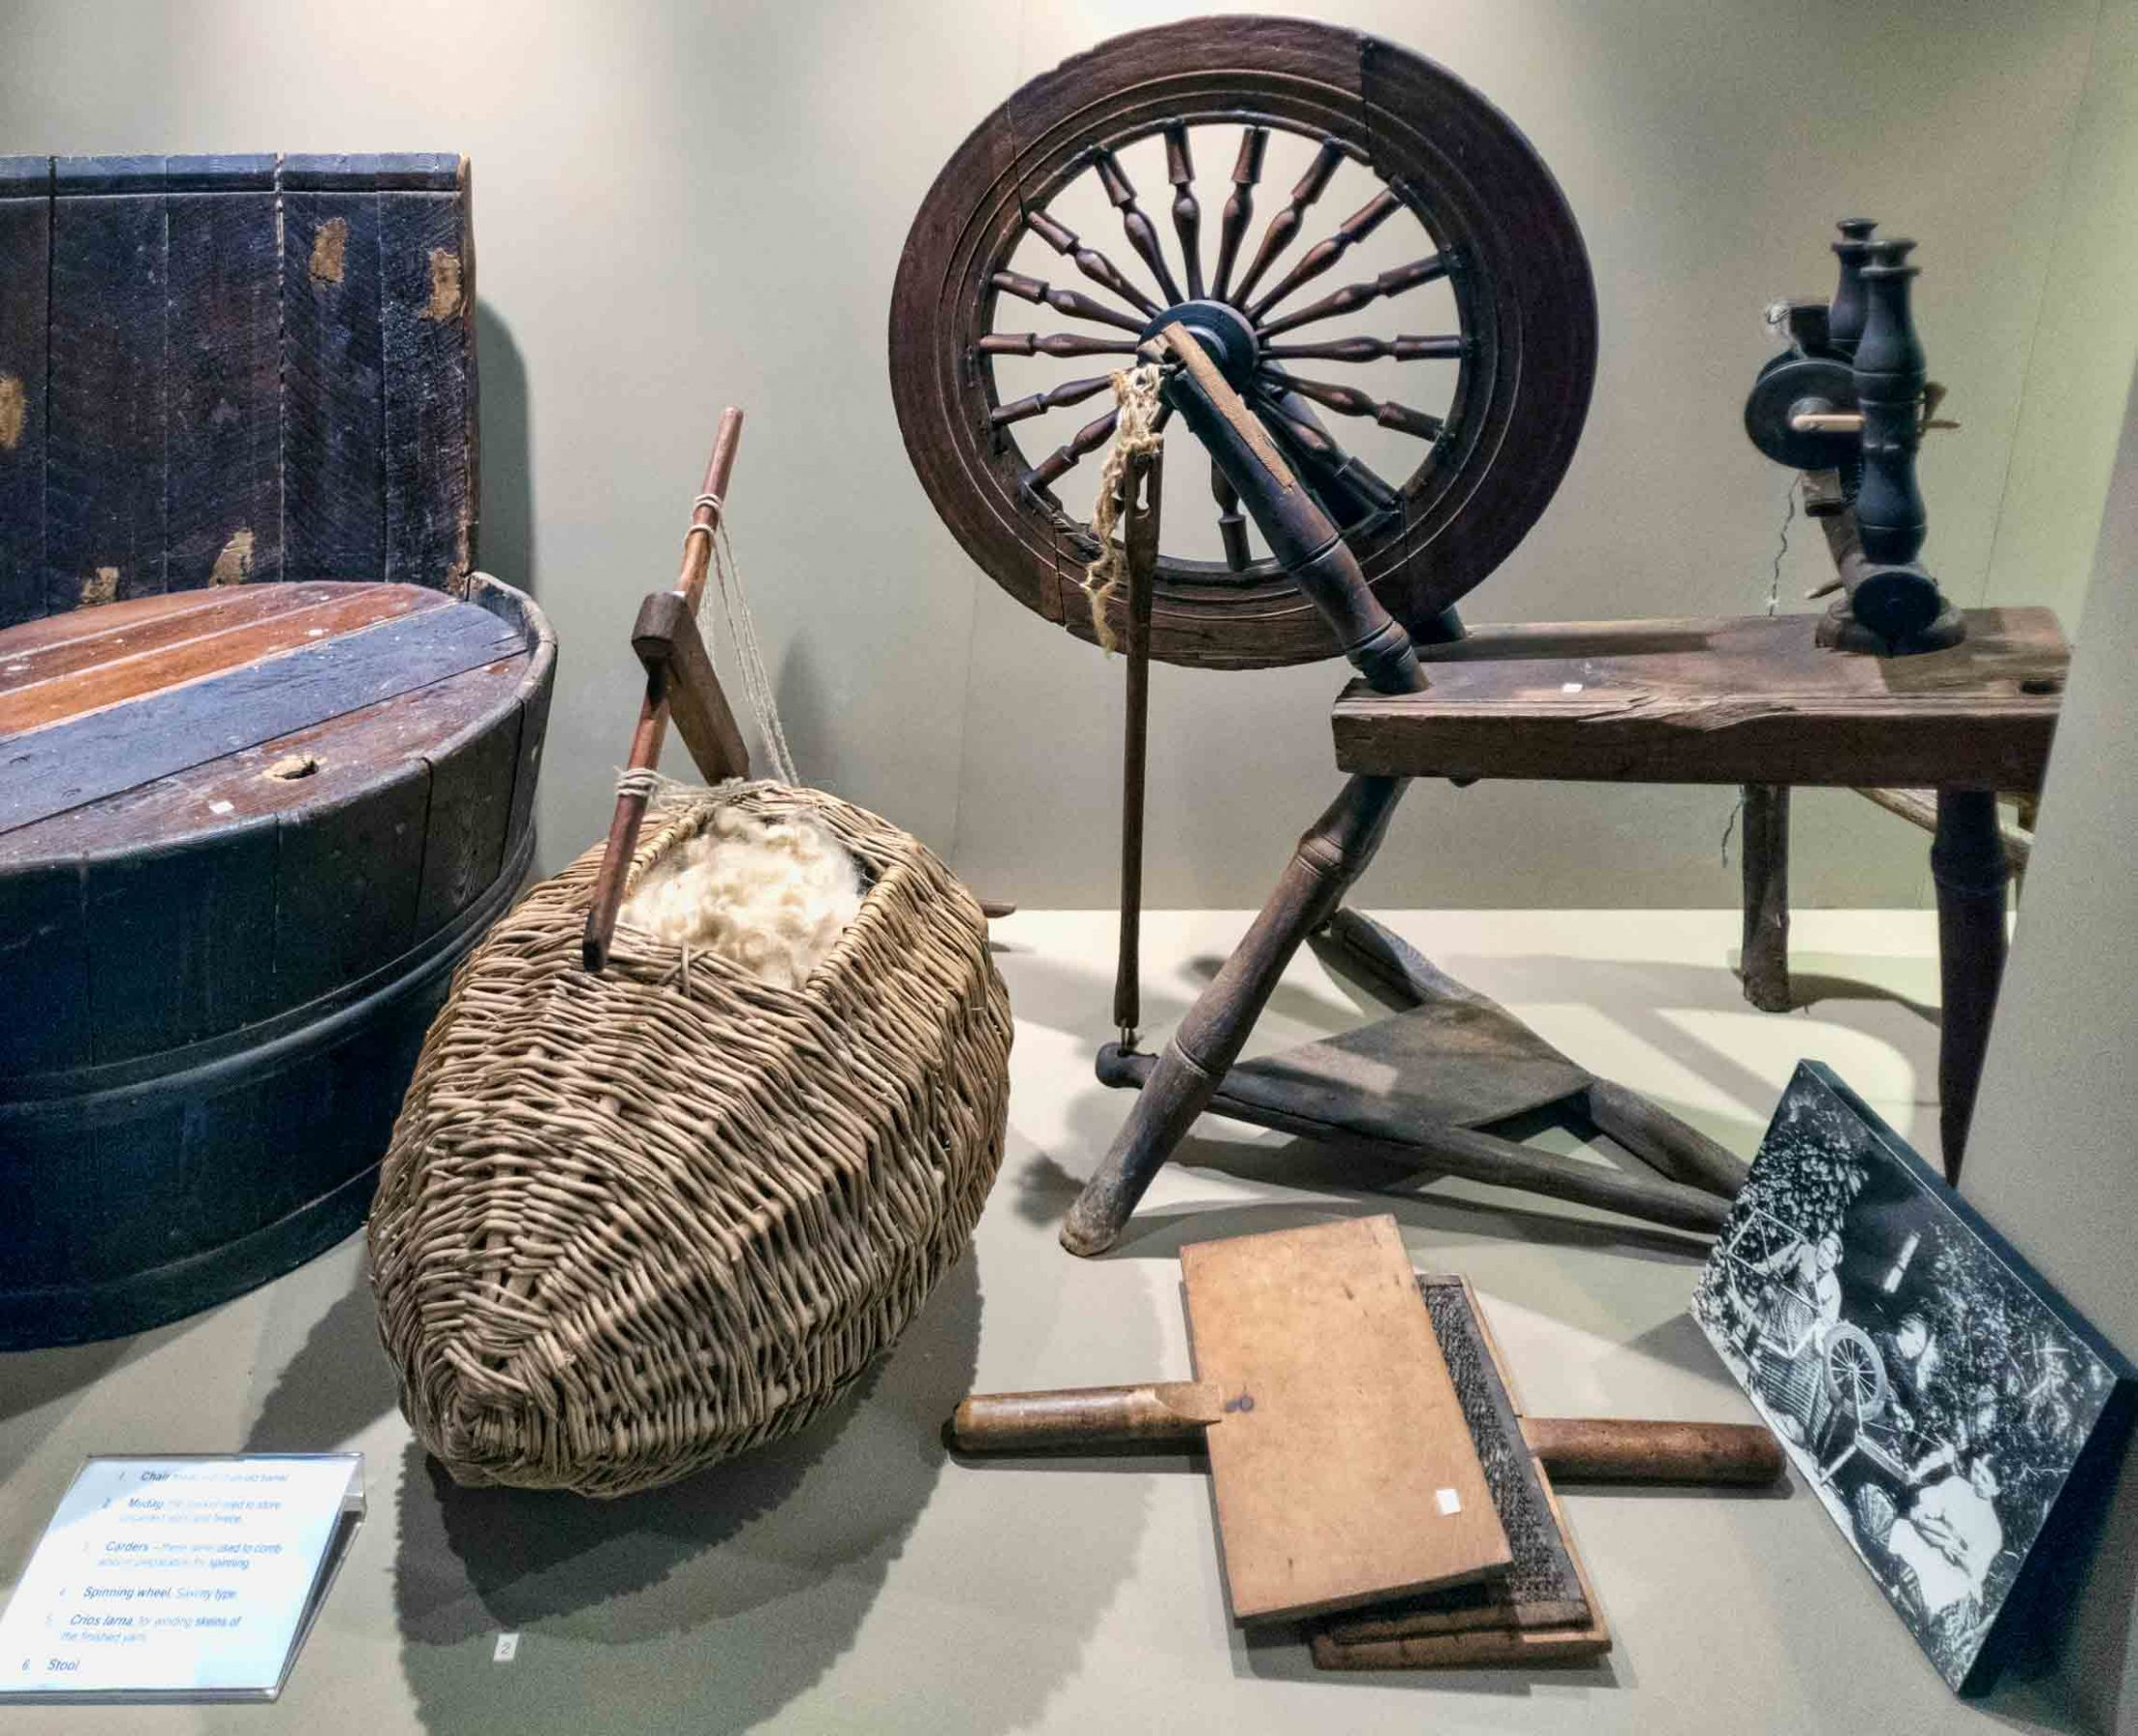 Display of crofting implements